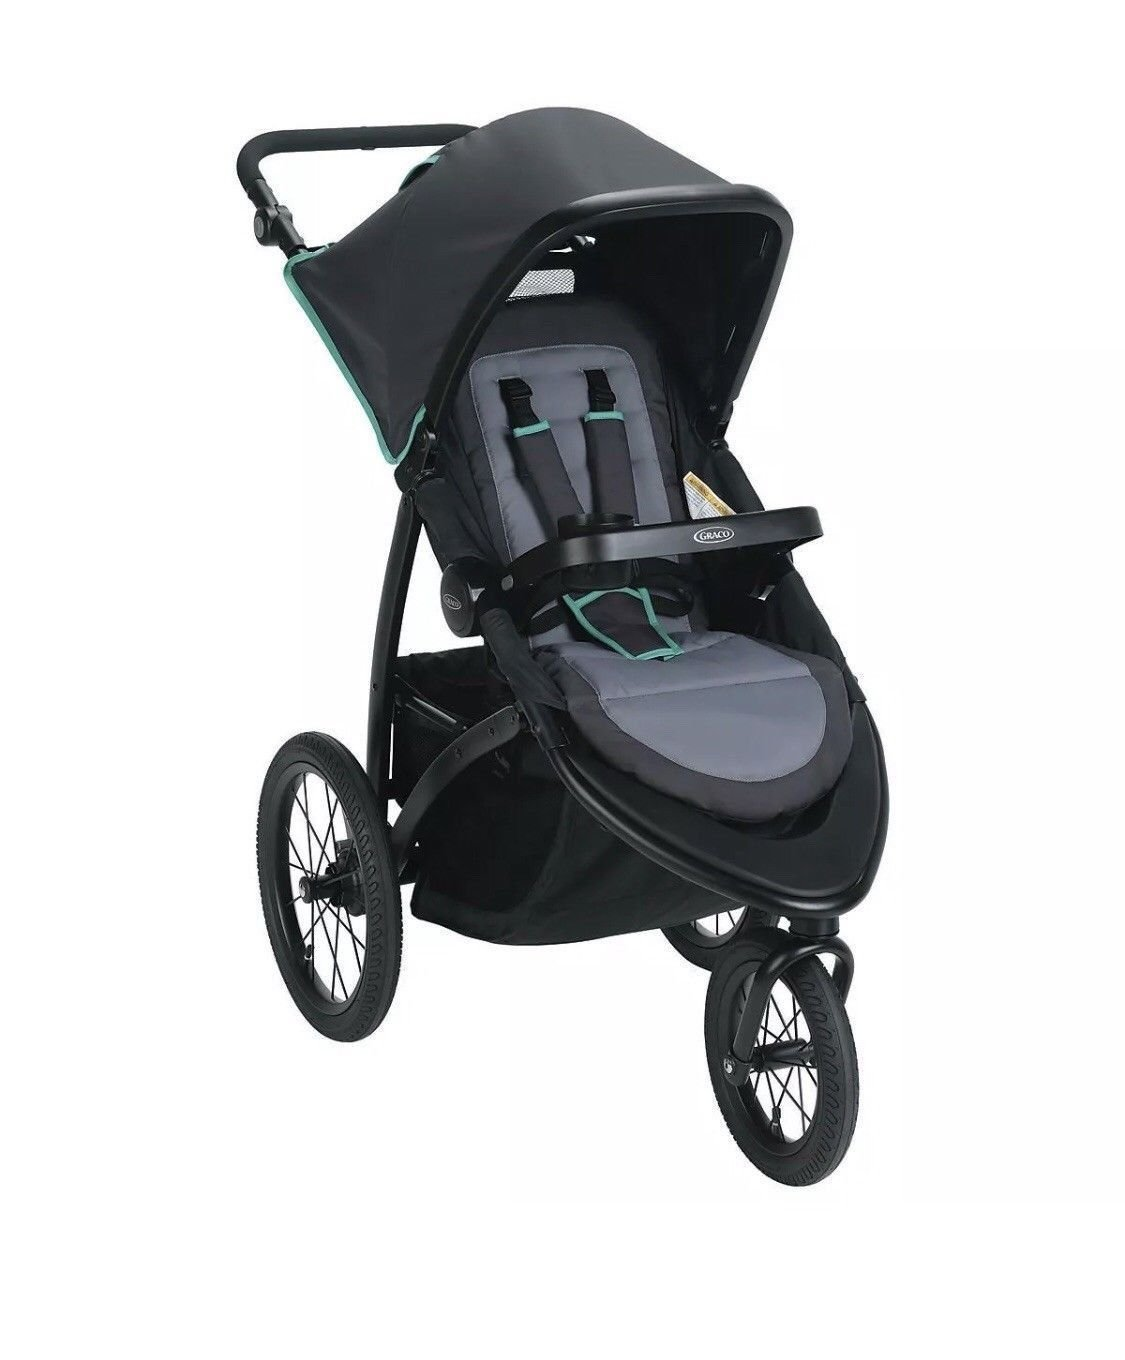 Graco Road Master Jogger Stroller, Lake Green Graco Baby